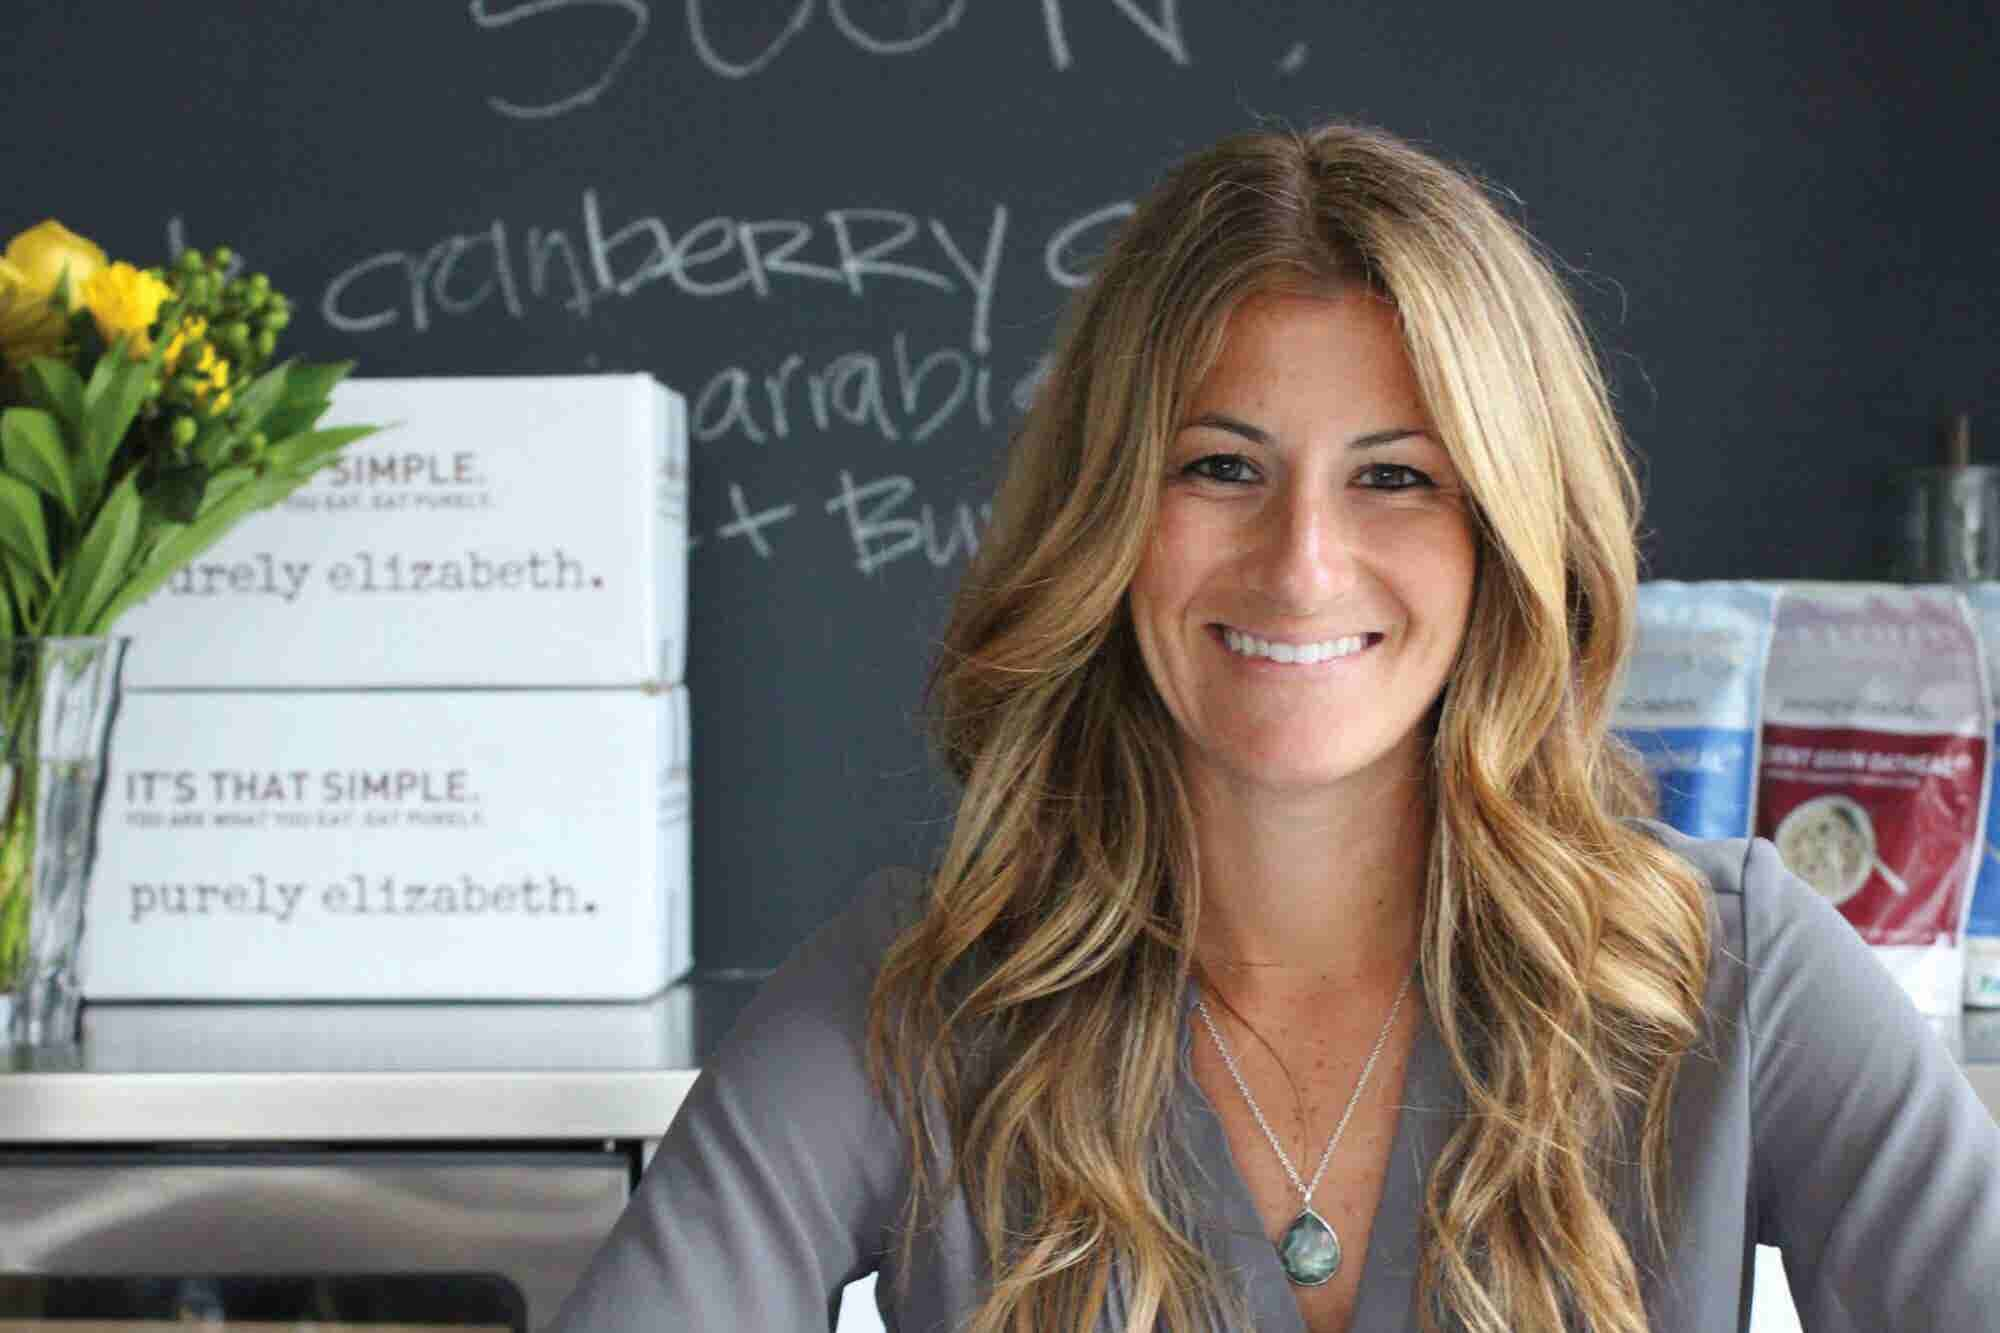 How the Entrepreneur Behind Purely Elizabeth Pivoted Into Her Breakout Granola Product